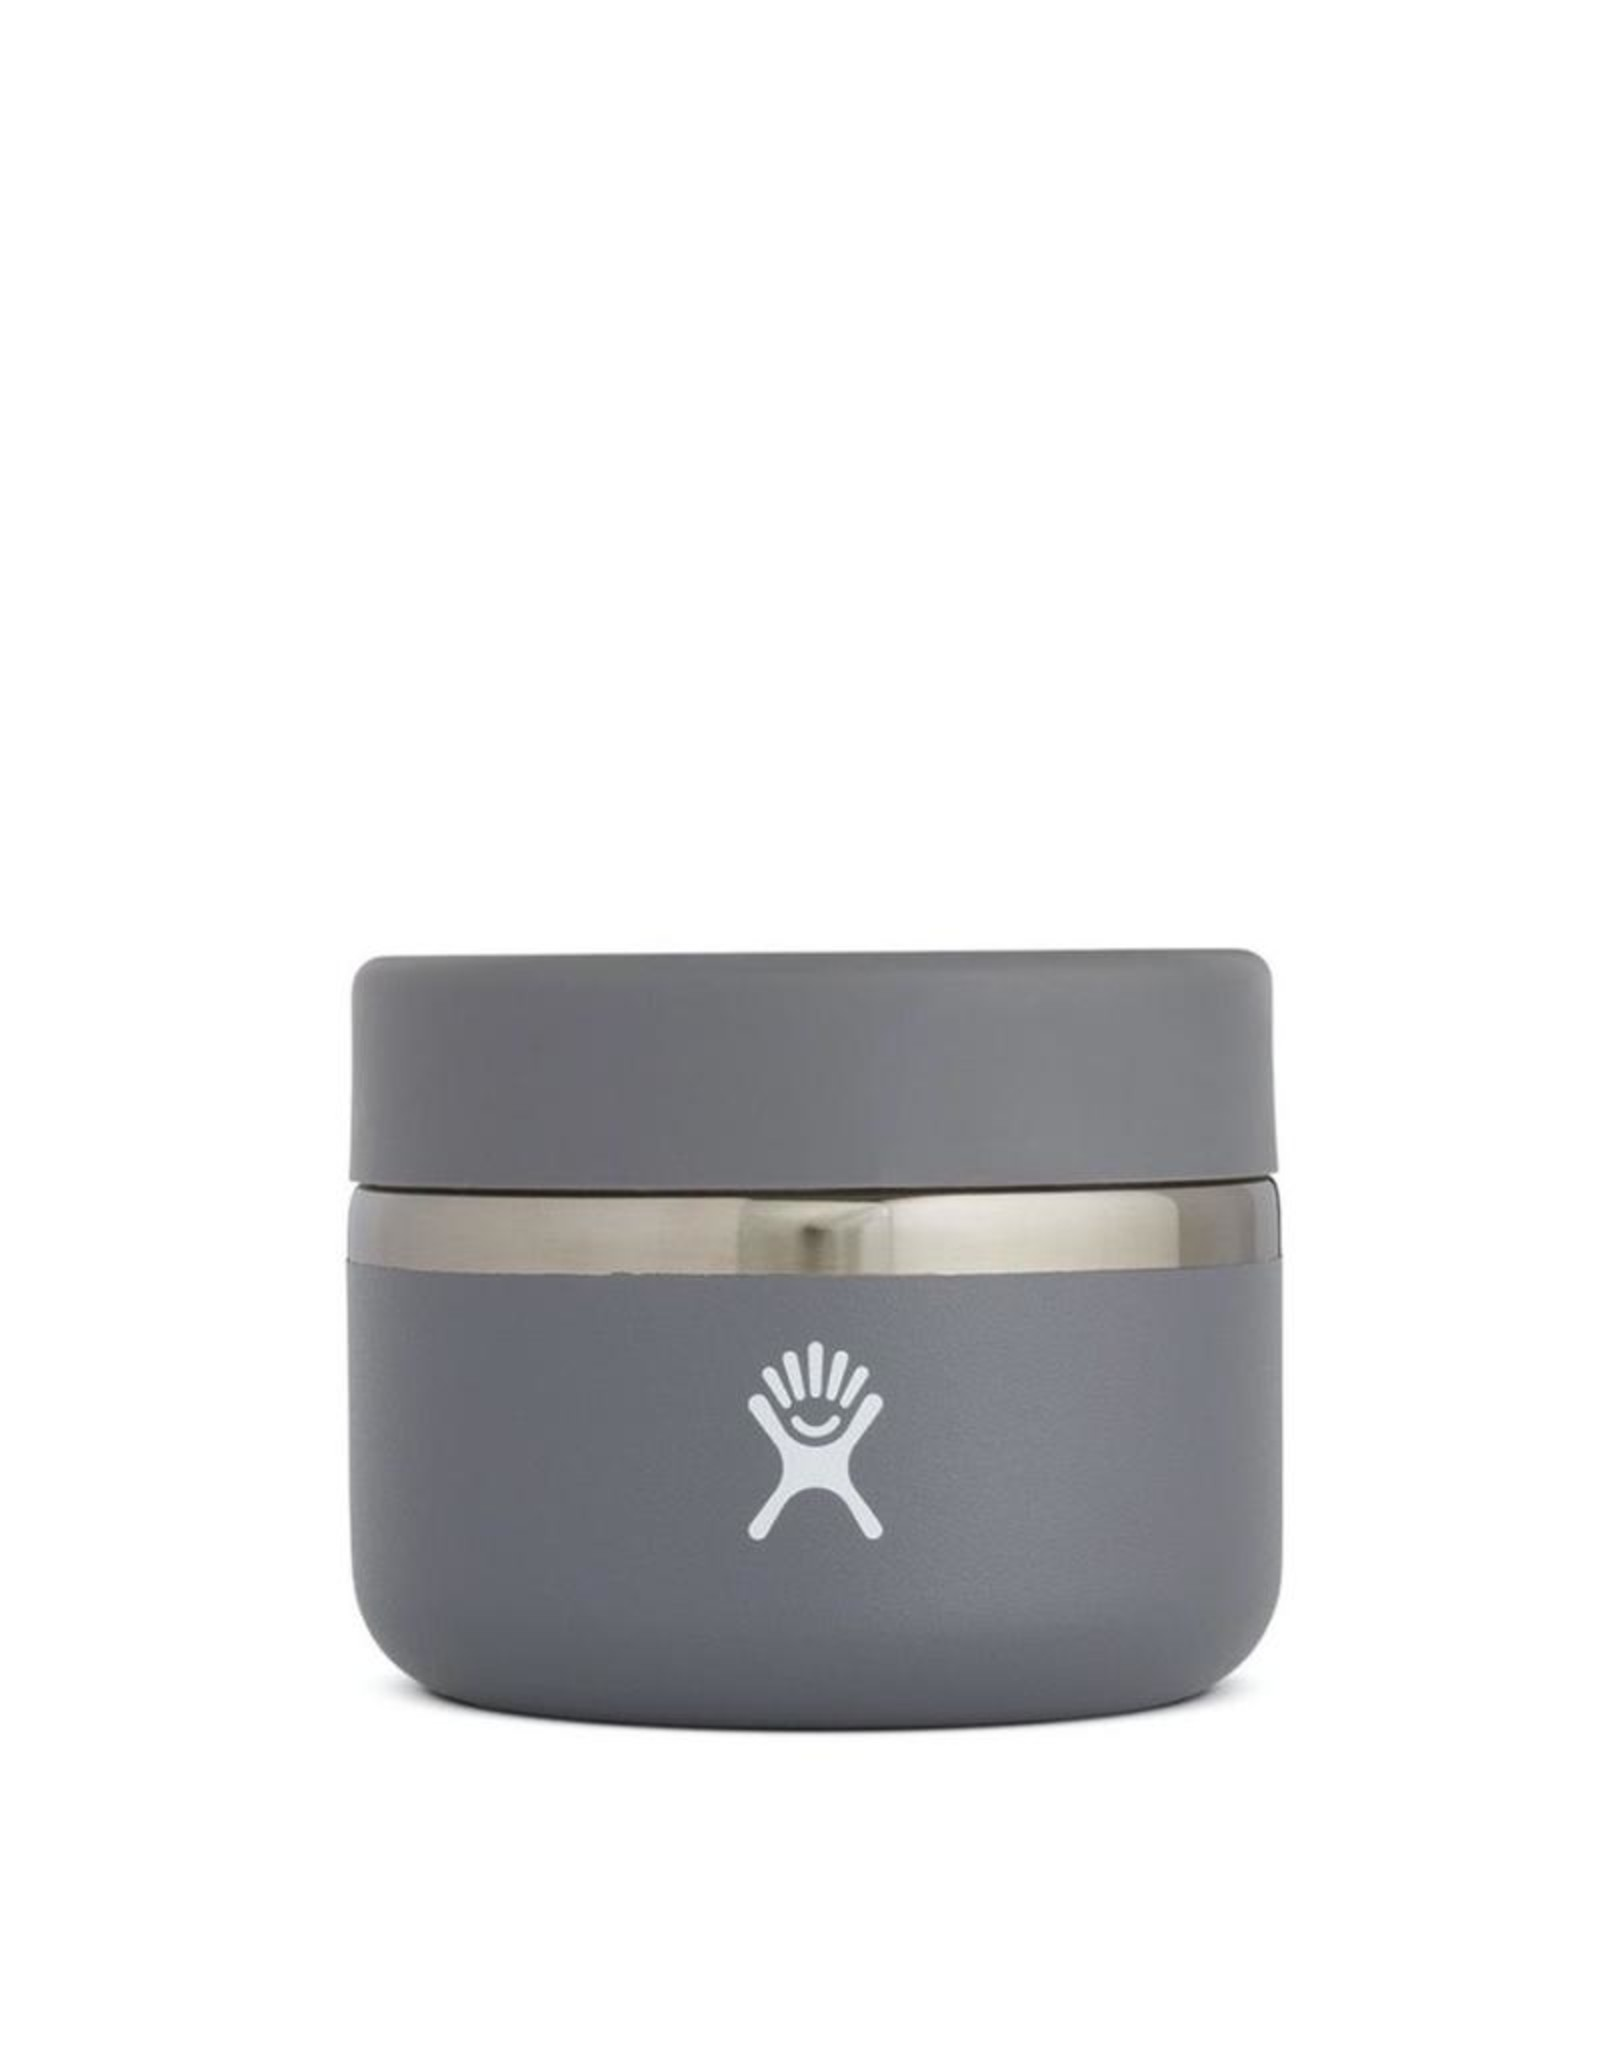 Hydro Flask 12oz Insulated Stainless Food Jar